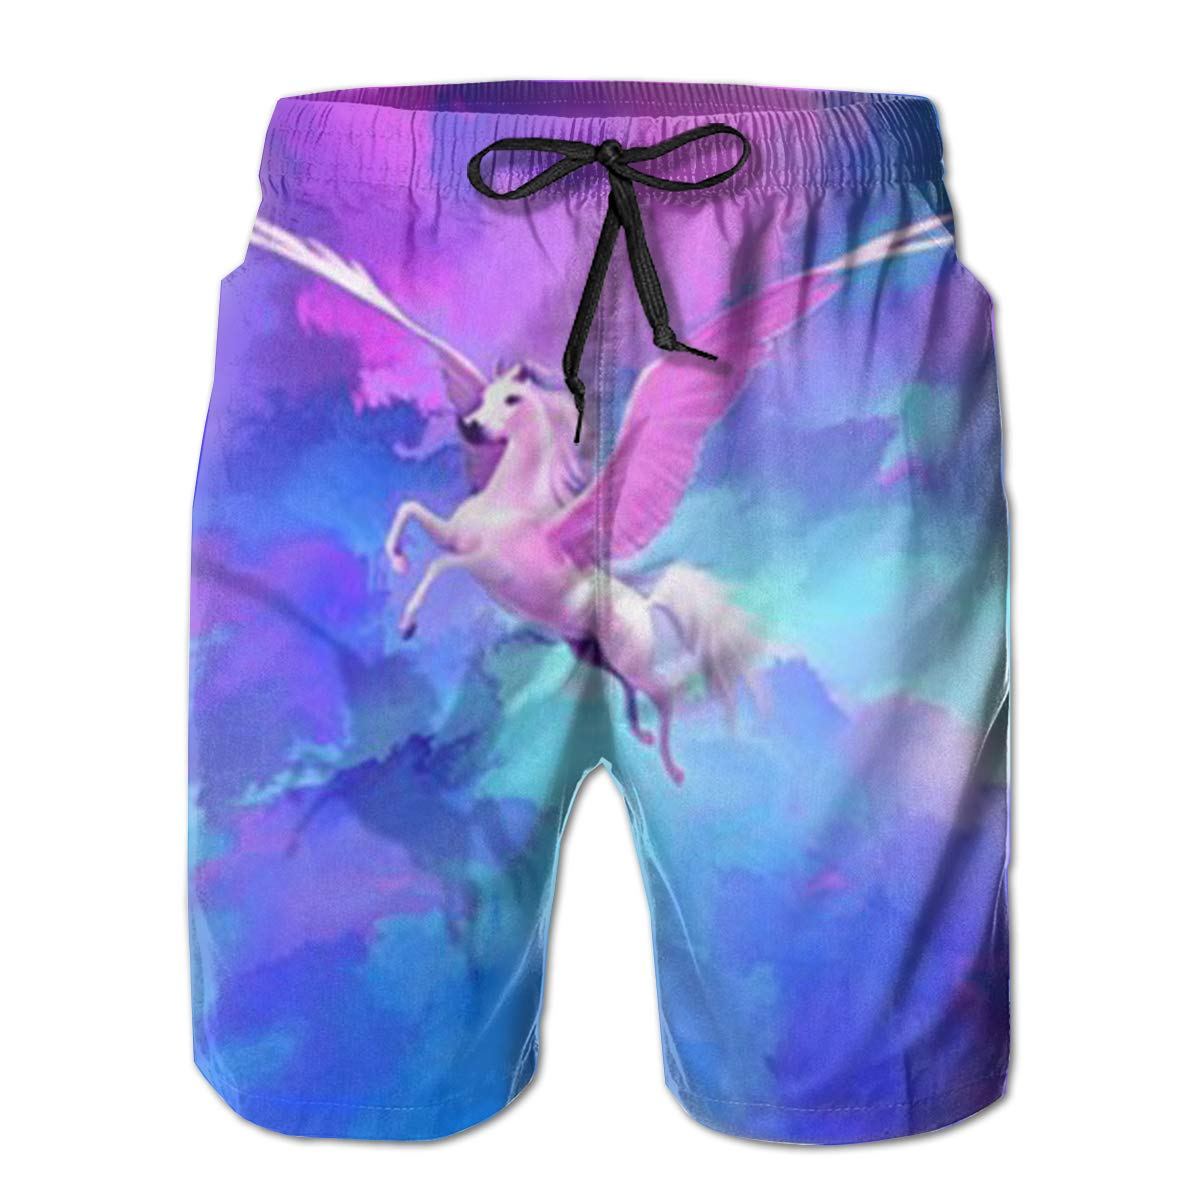 Wexzss Pegasus Funny Summer Quick-Drying Swim Trunks Beach Shorts Cargo Shorts